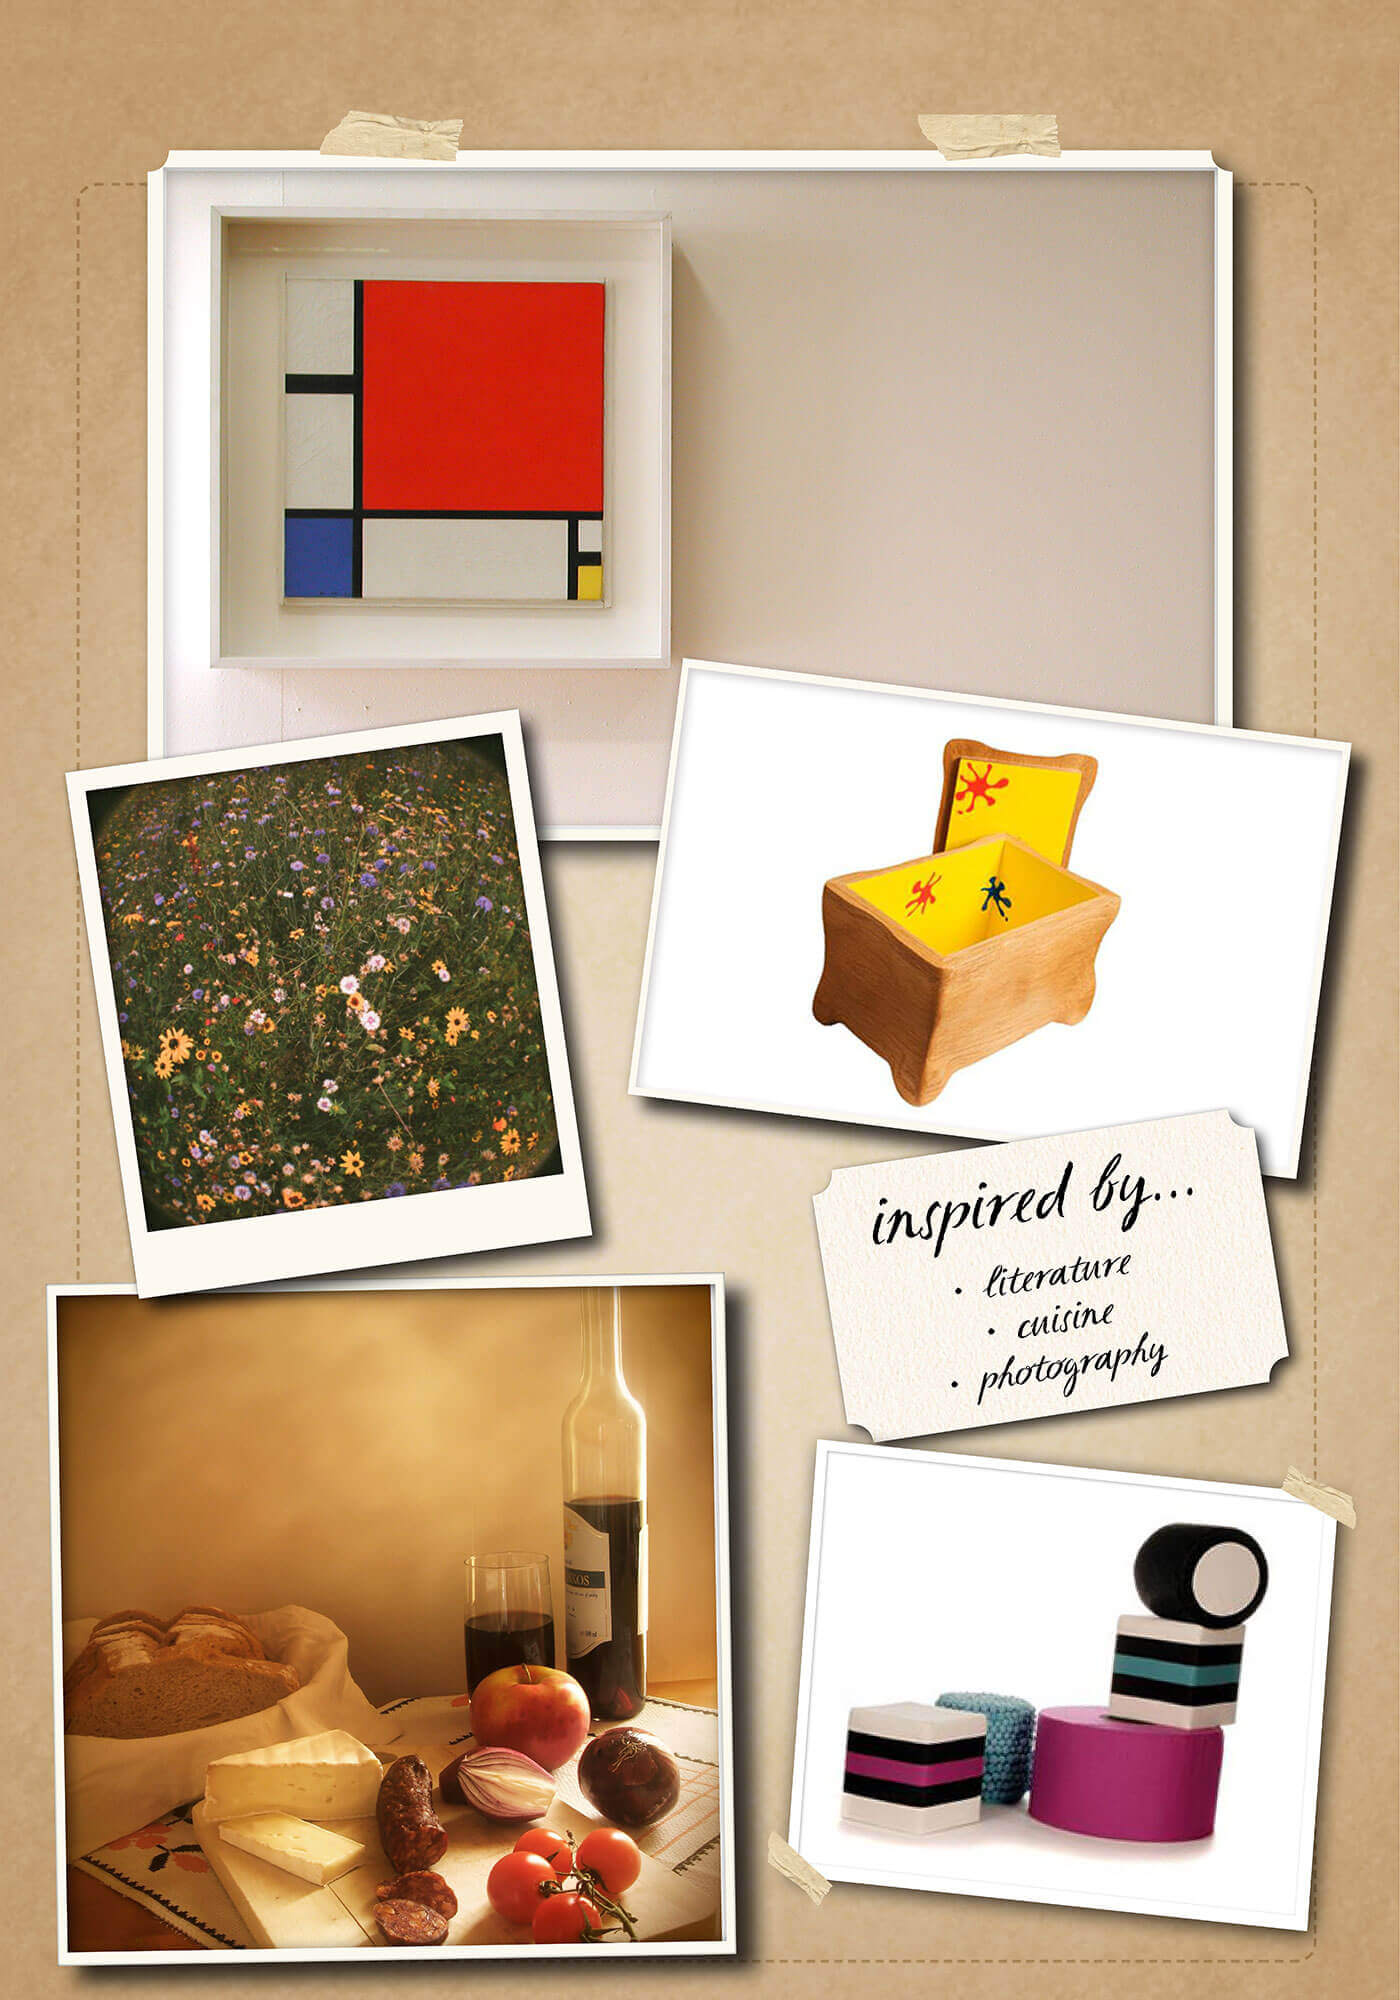 Inspiration Board for Amy Vinn